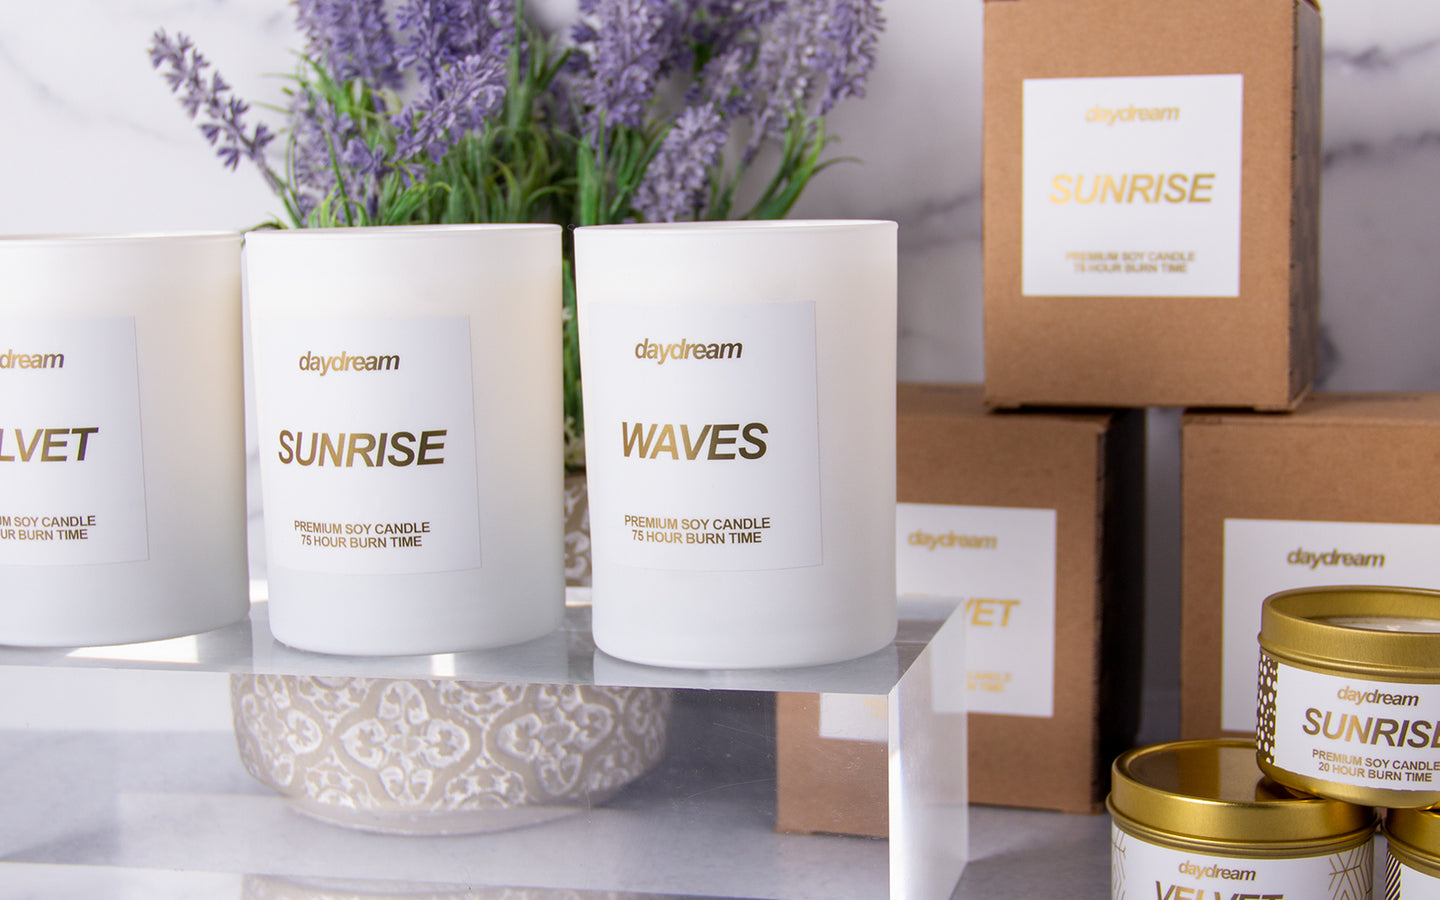 Premium soy candles that grow into flowers.